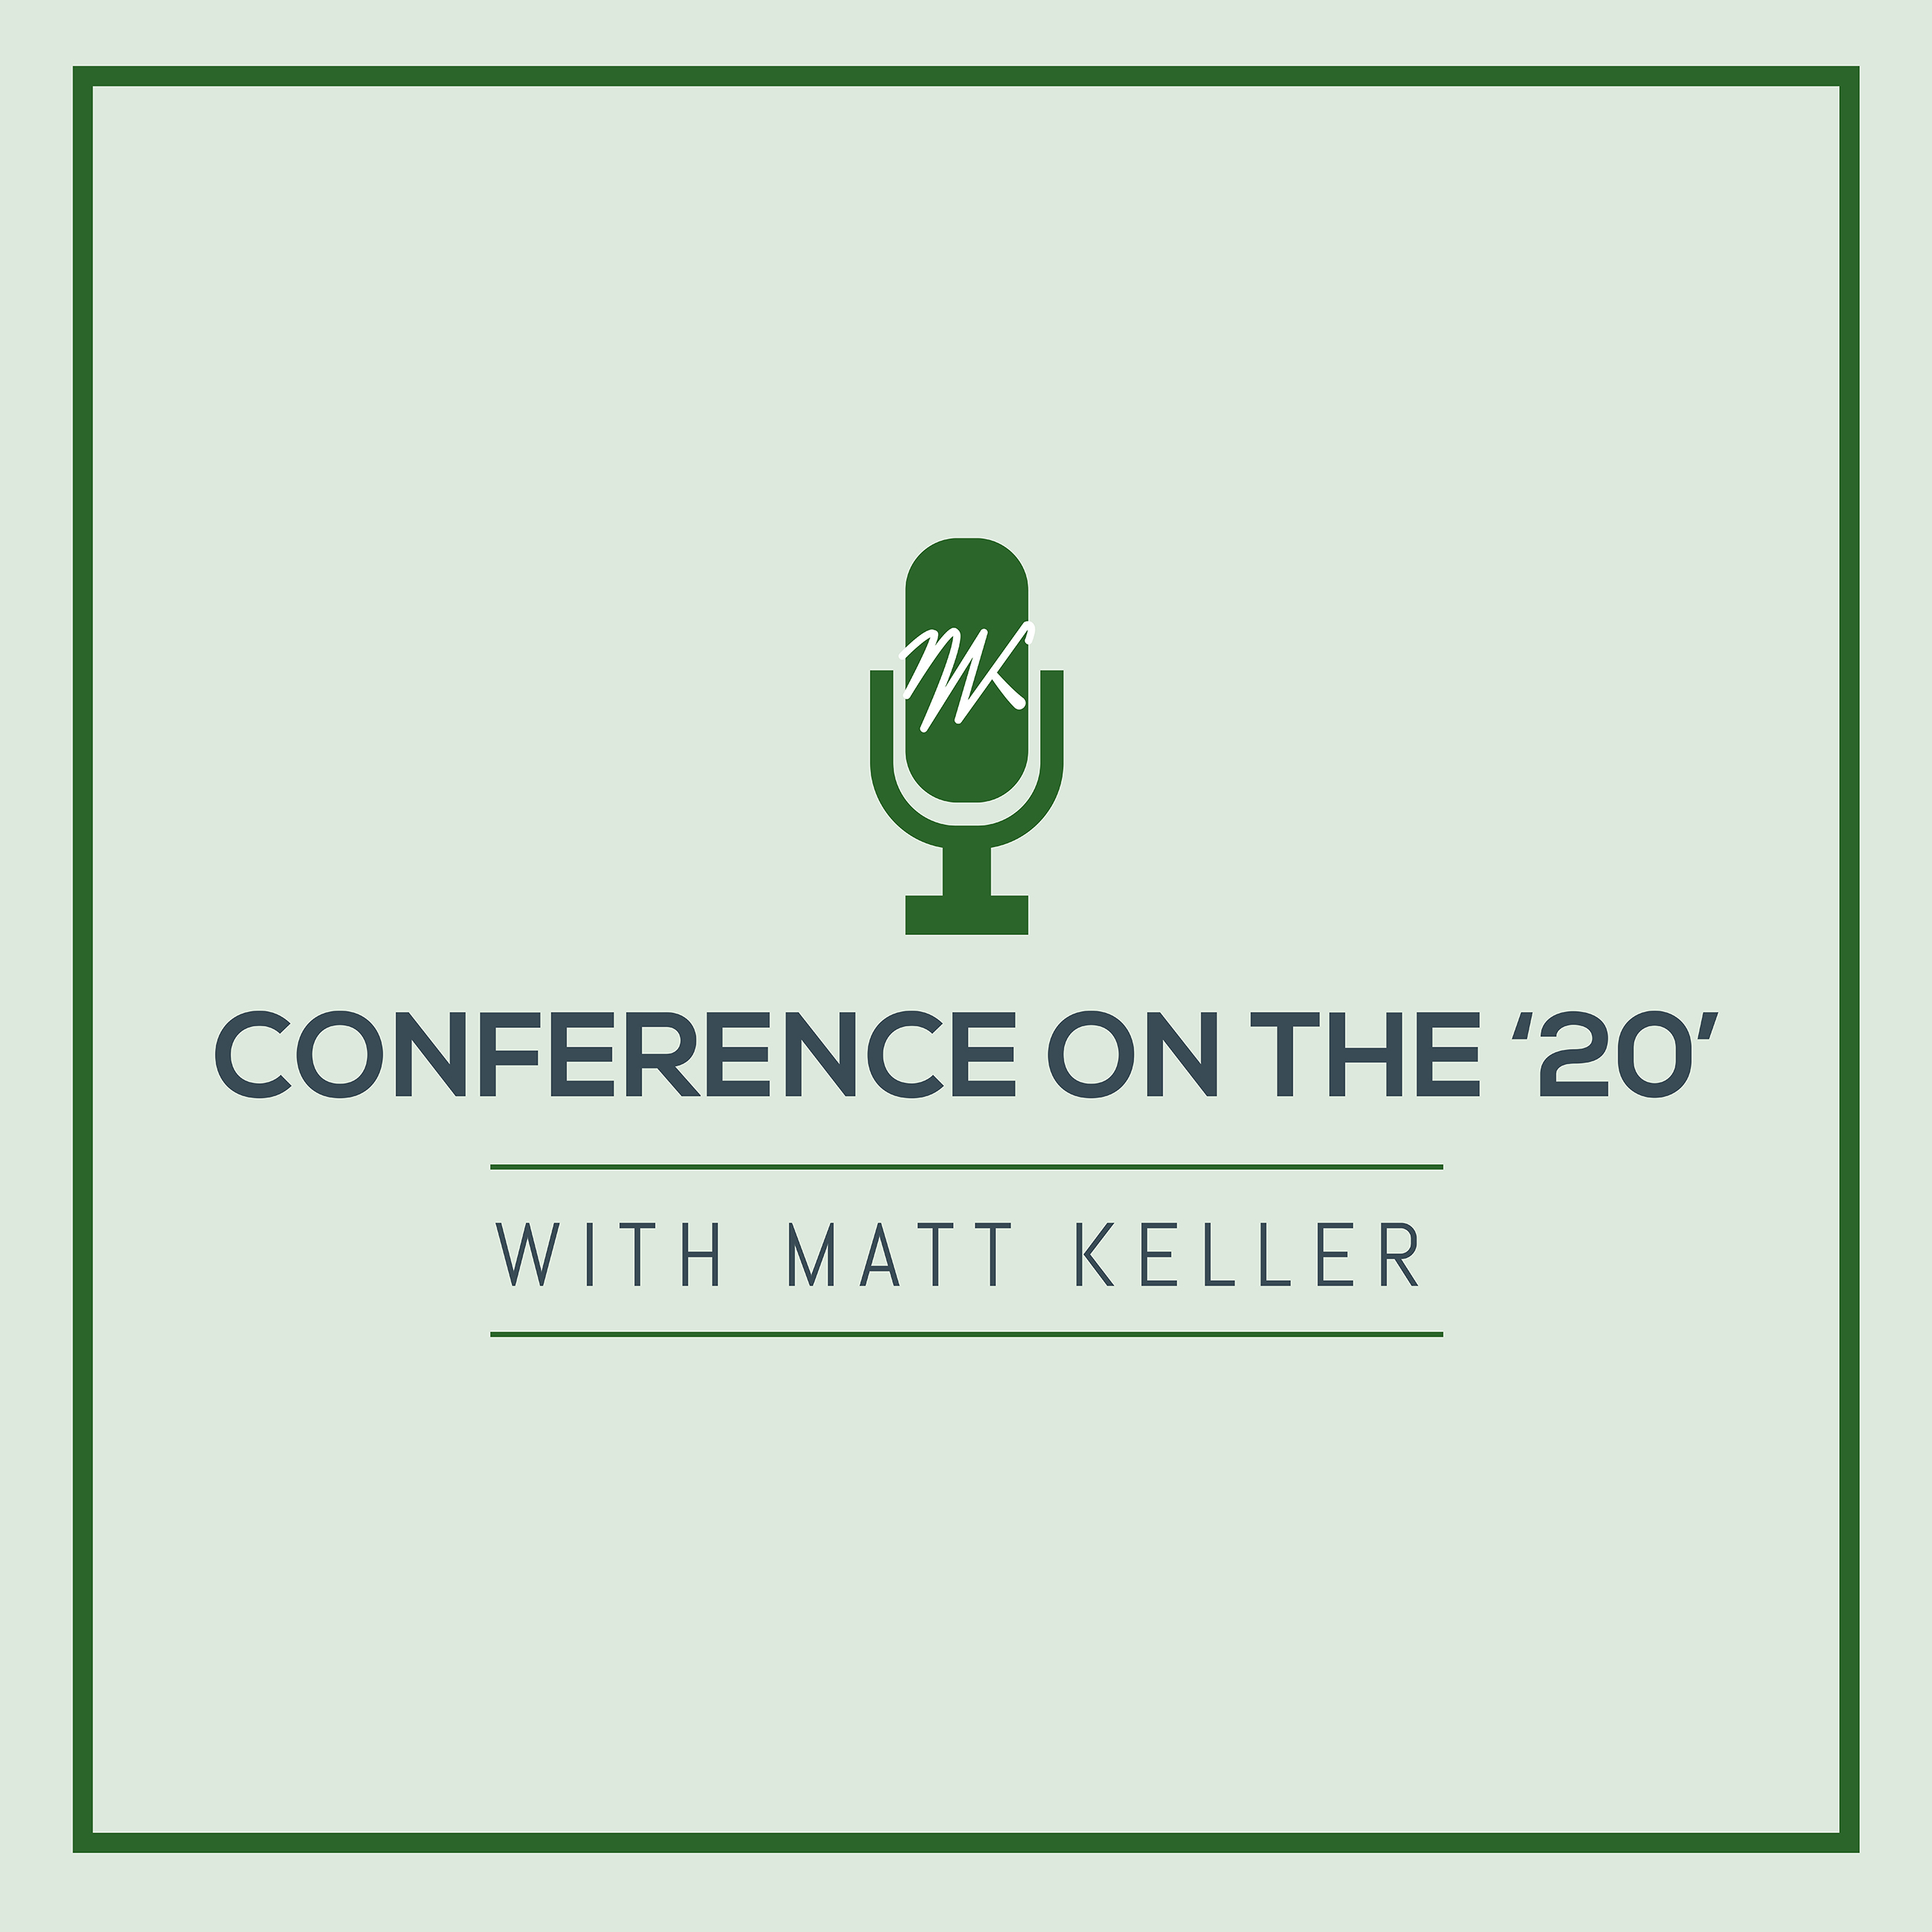 Artwork for Conference on the 20 with Matt Keller